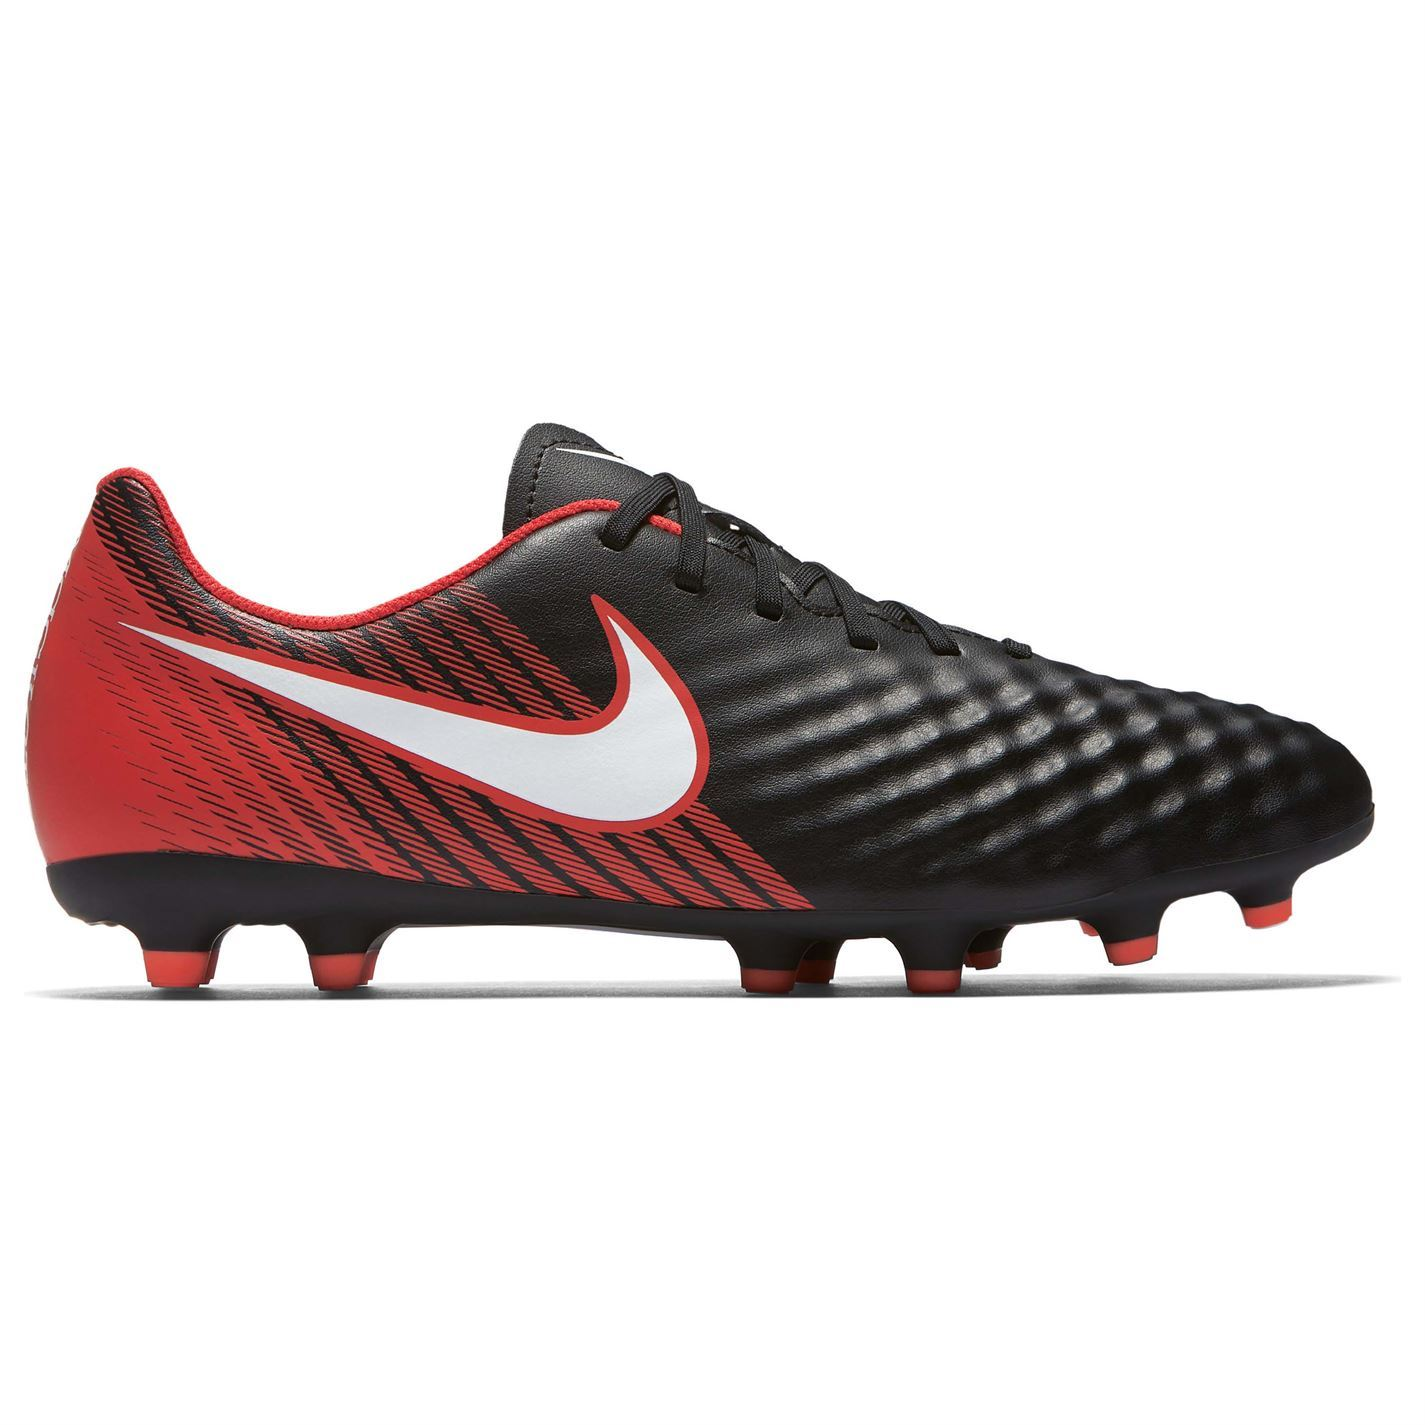 online store 59f3c e6429 Nike-Magista-Opus-FG-Firm-Ground-Football-Boots-